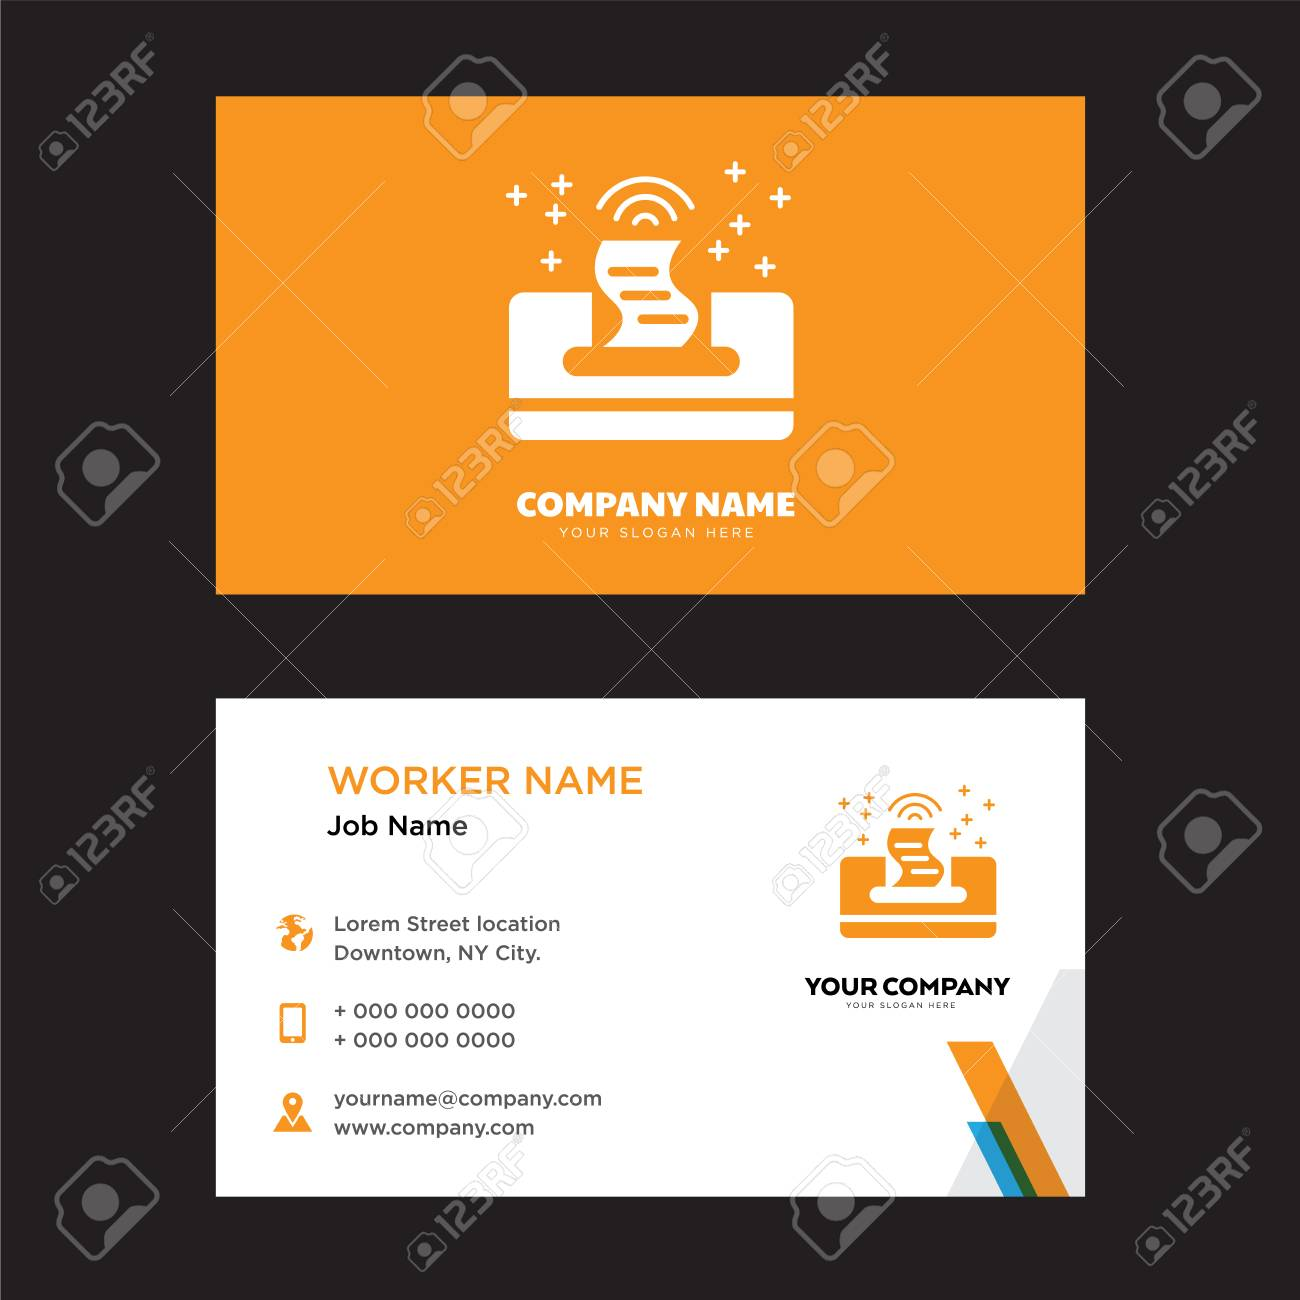 Printer business card design template visiting for your company printer business card design template visiting for your company modern horizontal identity card vector wajeb Choice Image